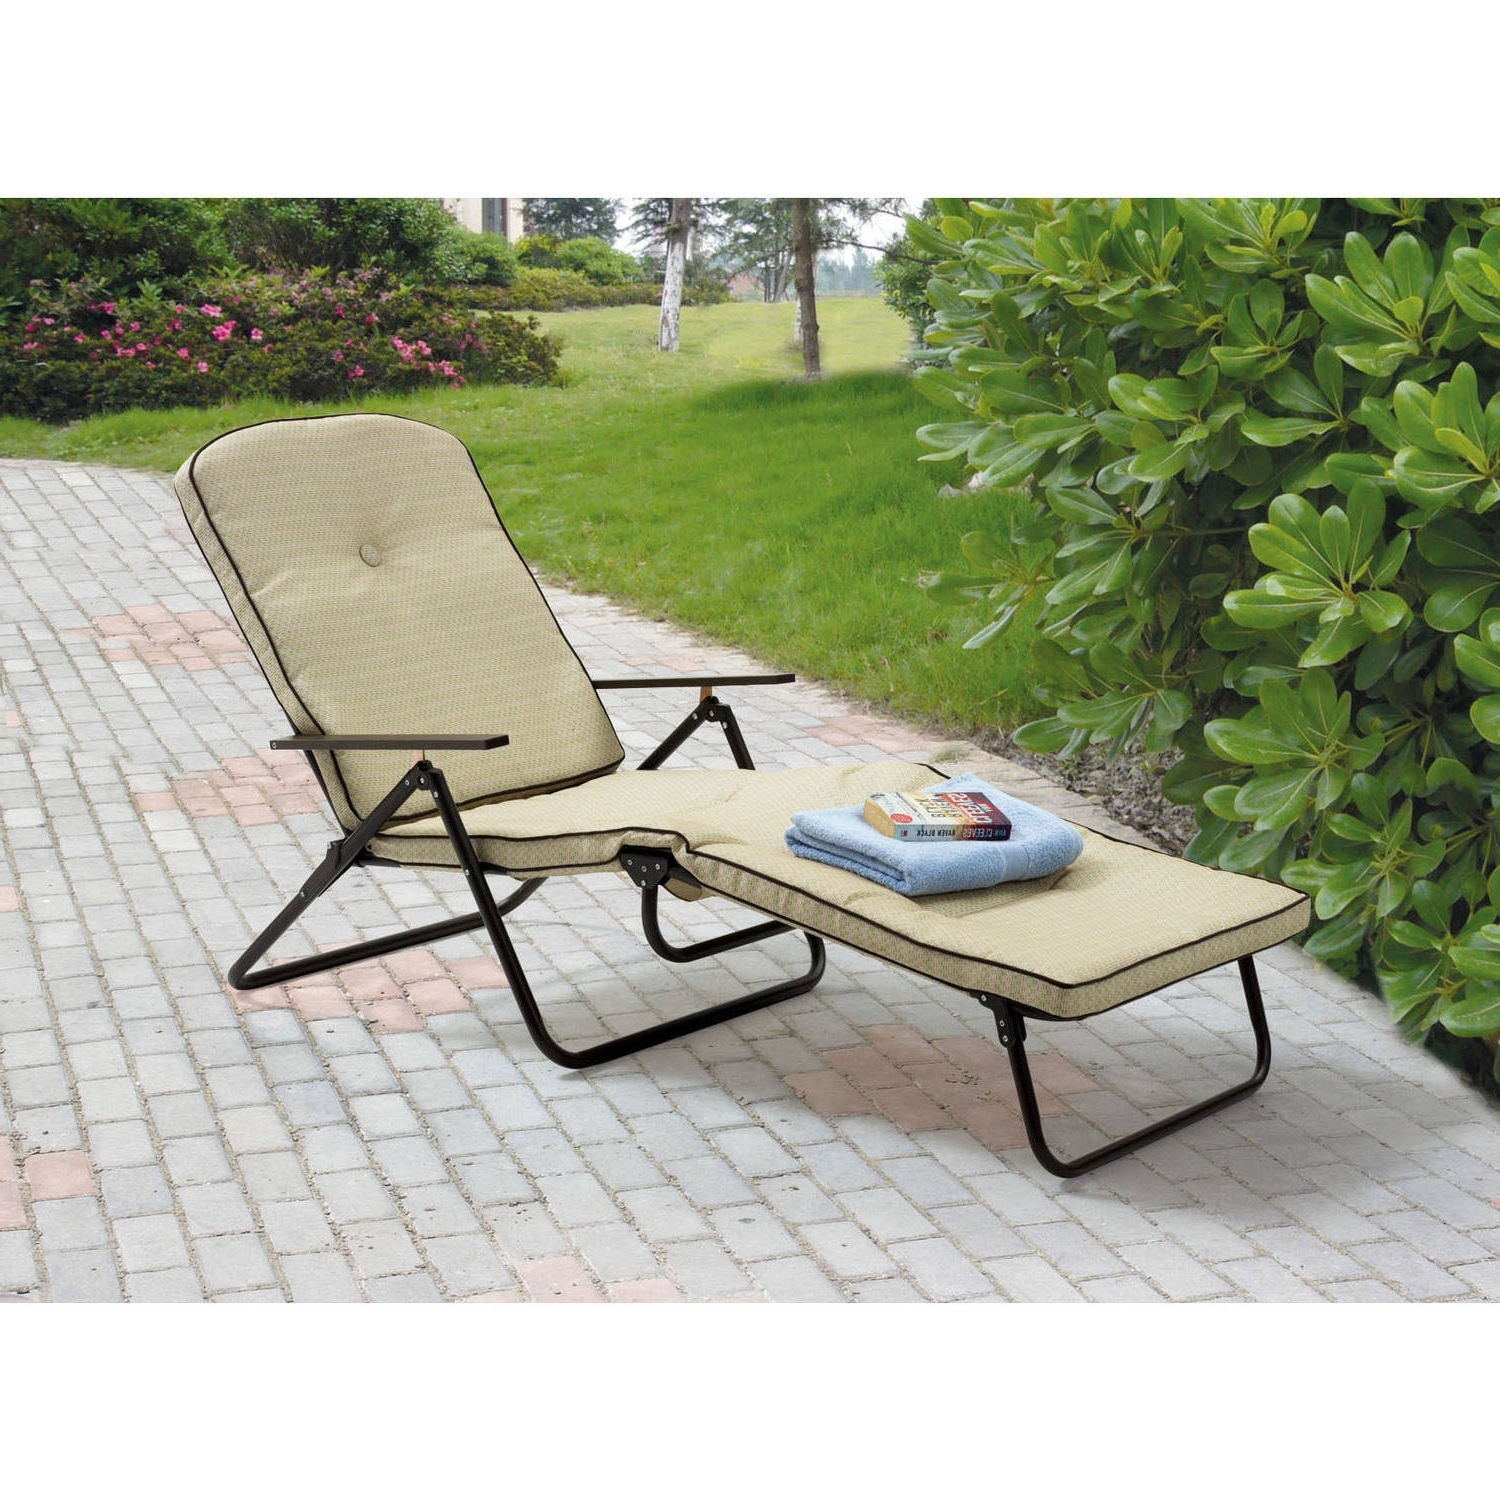 Mainstays Sand Dune Outdoor Padded Folding Chaise Lounge, Tan Pertaining To Favorite Folding Chaises (View 4 of 15)